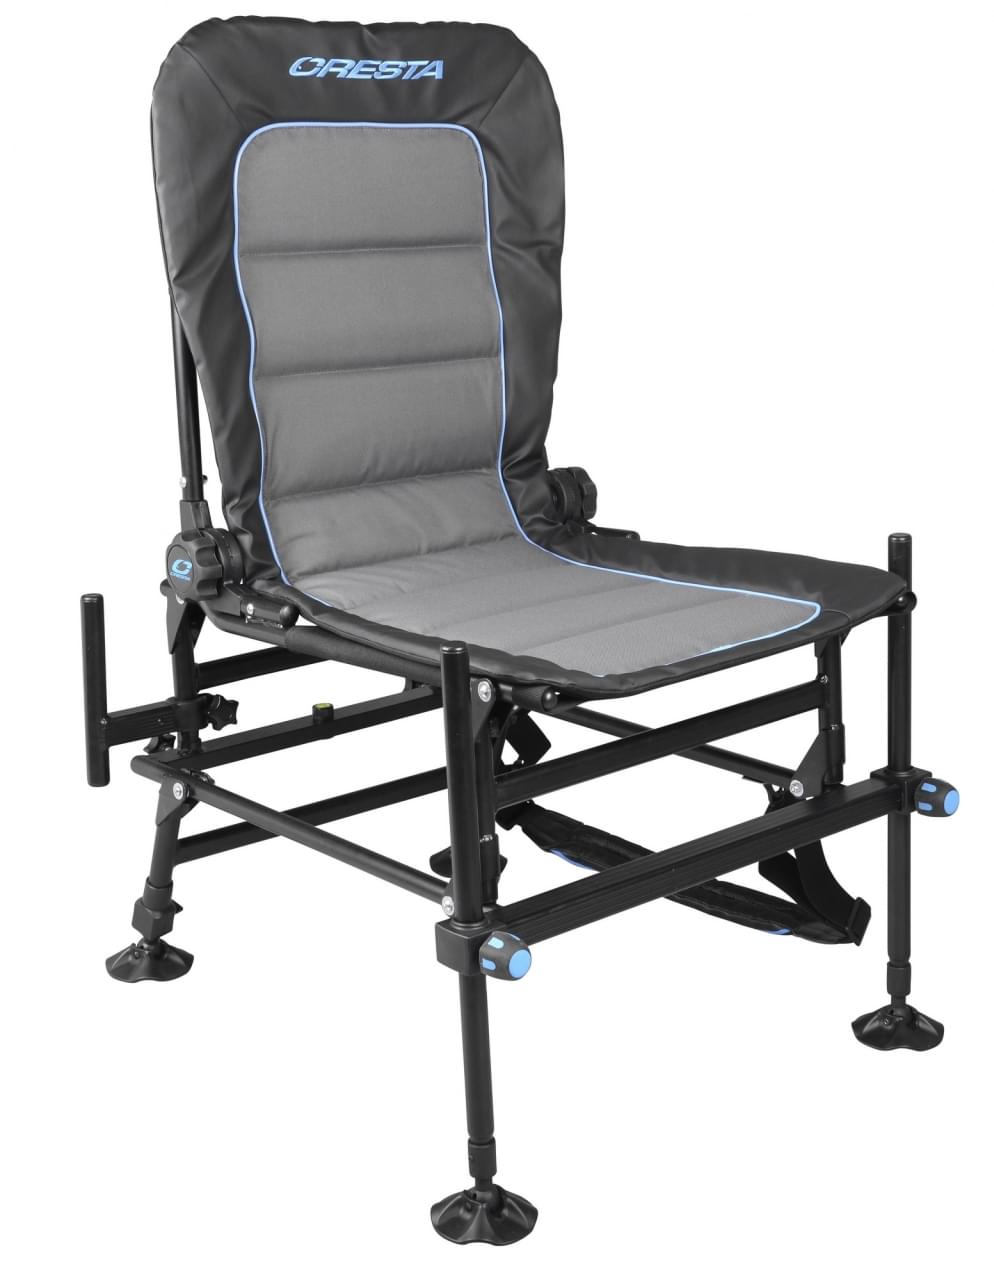 Cresta Blackthorne Comfort Chair High